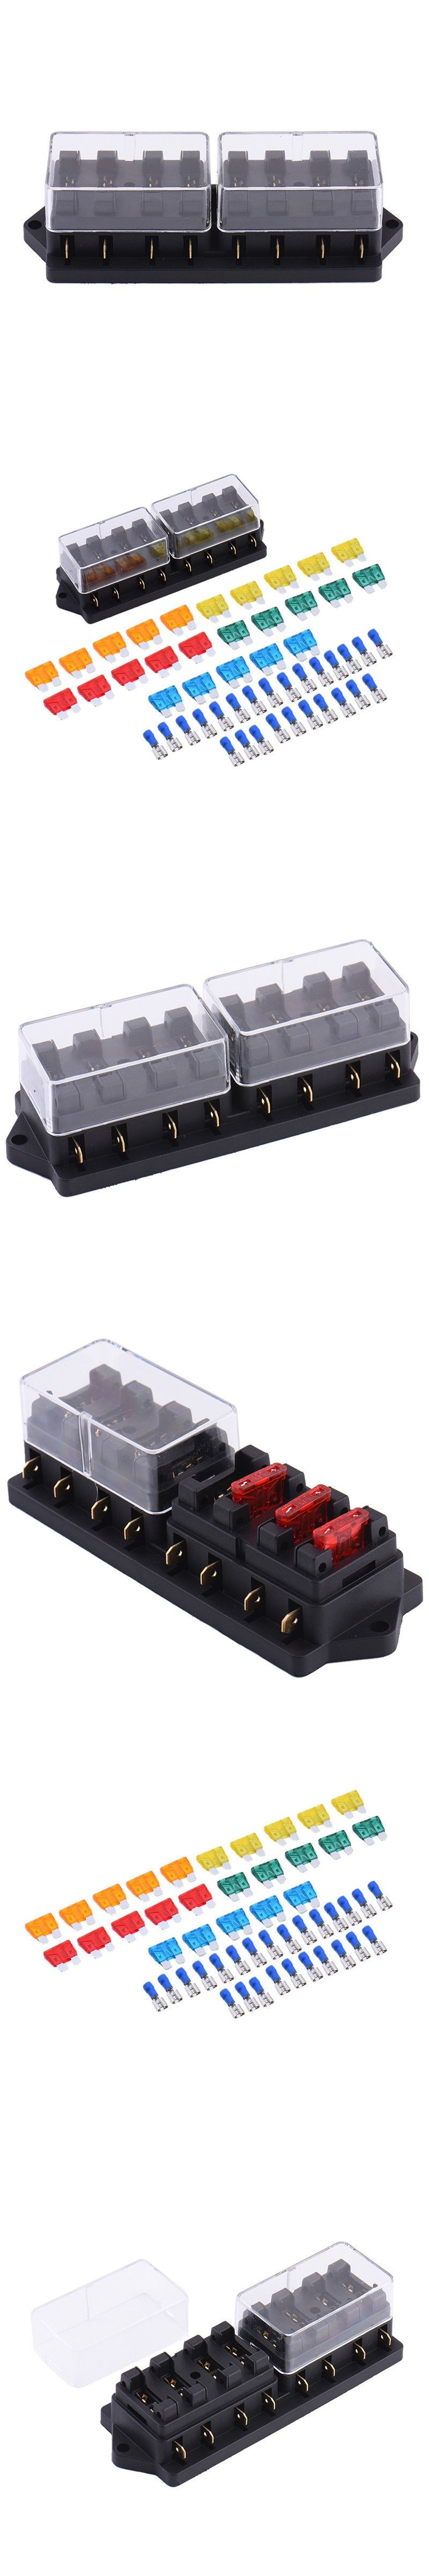 small resolution of 12v 8 way fuse block holder box car vehicle circuit automotive blade with 15pcs fuse accessory